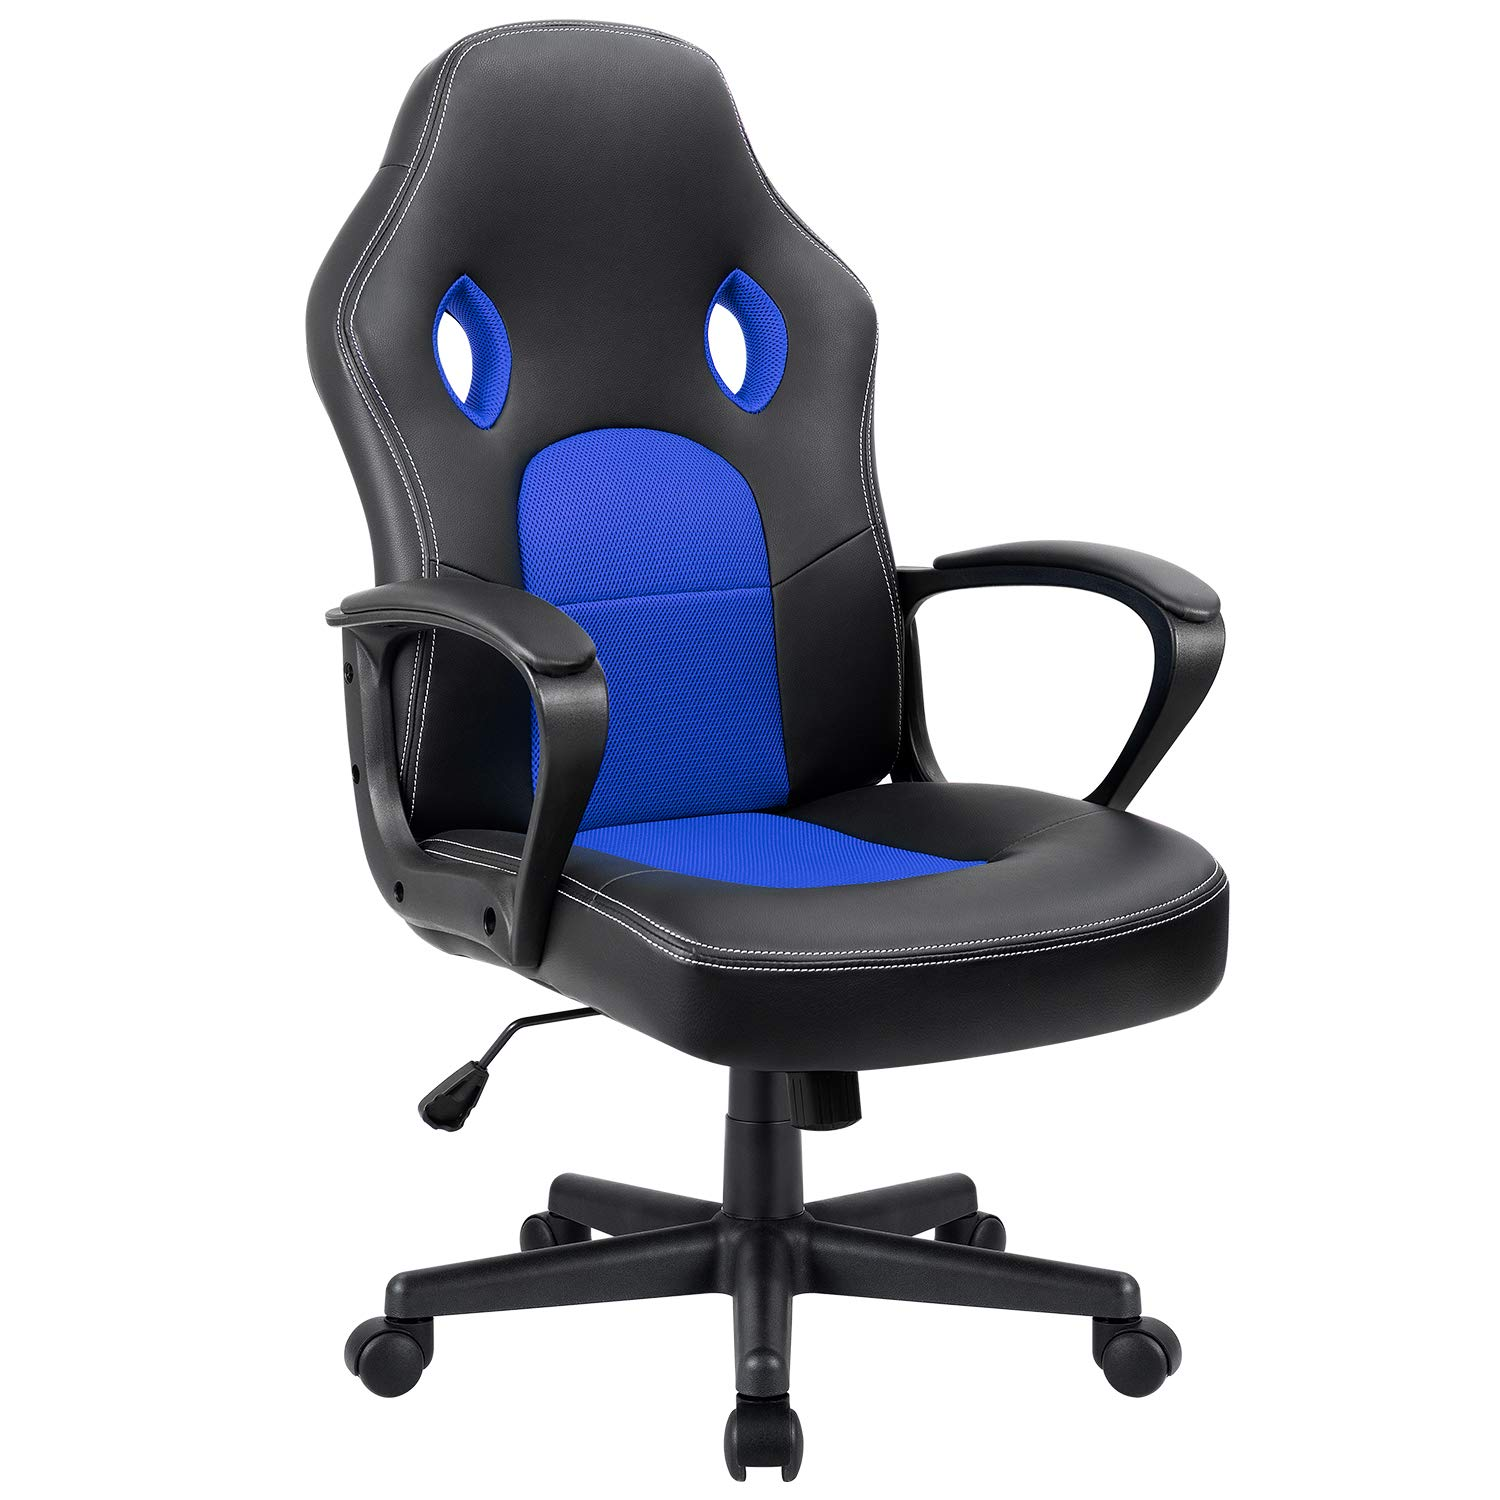 Furmax Office Chair Desk Leather Gaming Chair, High Back Ergonomic Adjustable Racing Chair,Task Swivel Executive Computer Chair Headrest and Lumbar Support (Blue)